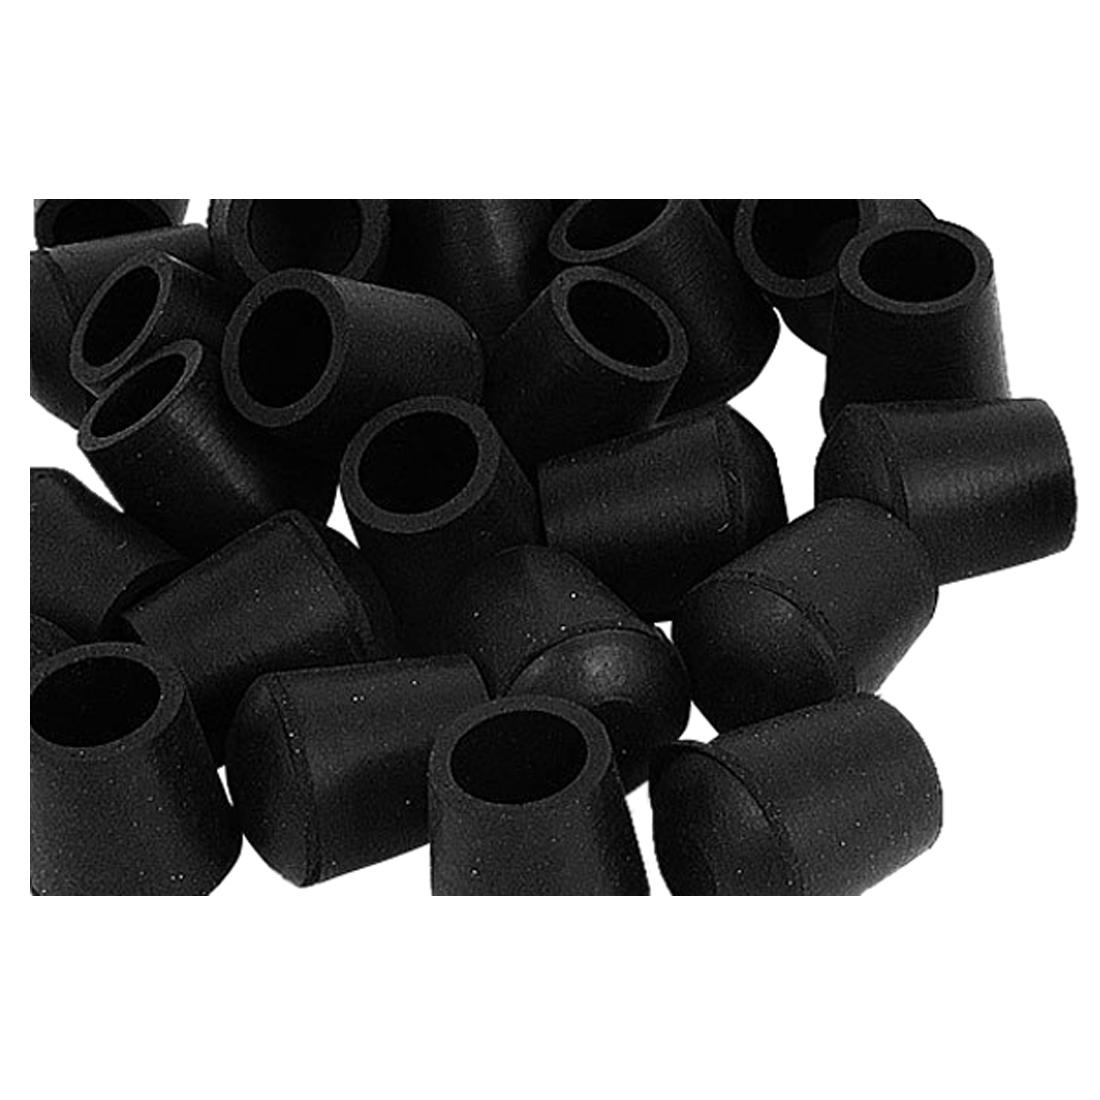 Power Tool Accessories Tools Official Website 10pcs Round Black Rubber Chair Leg Pad Cover 31x24x25mm Furniture Feet Non-slip